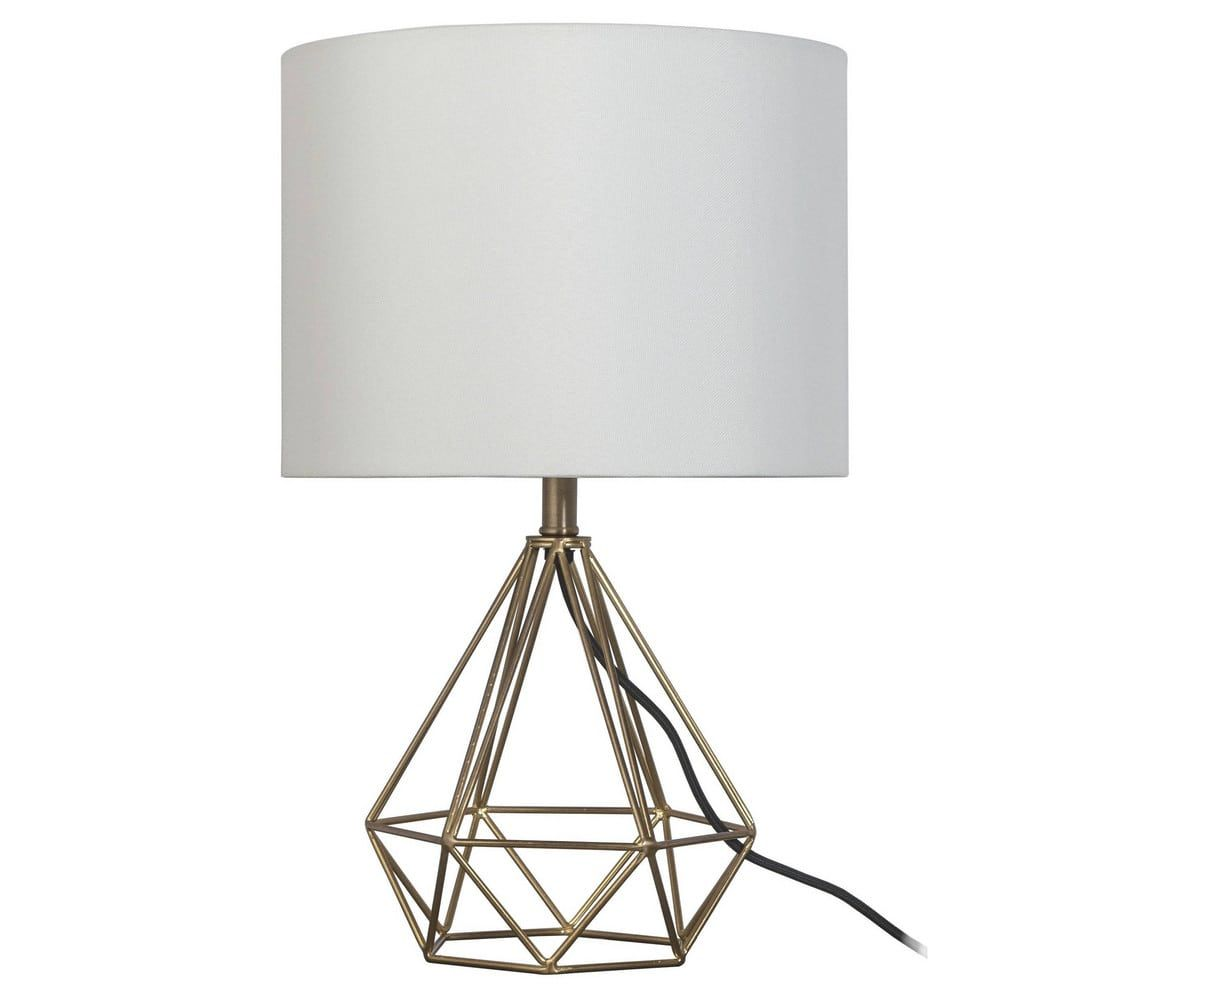 Best Target Gold Home Decor Products To Buy Now 2018 Small Table